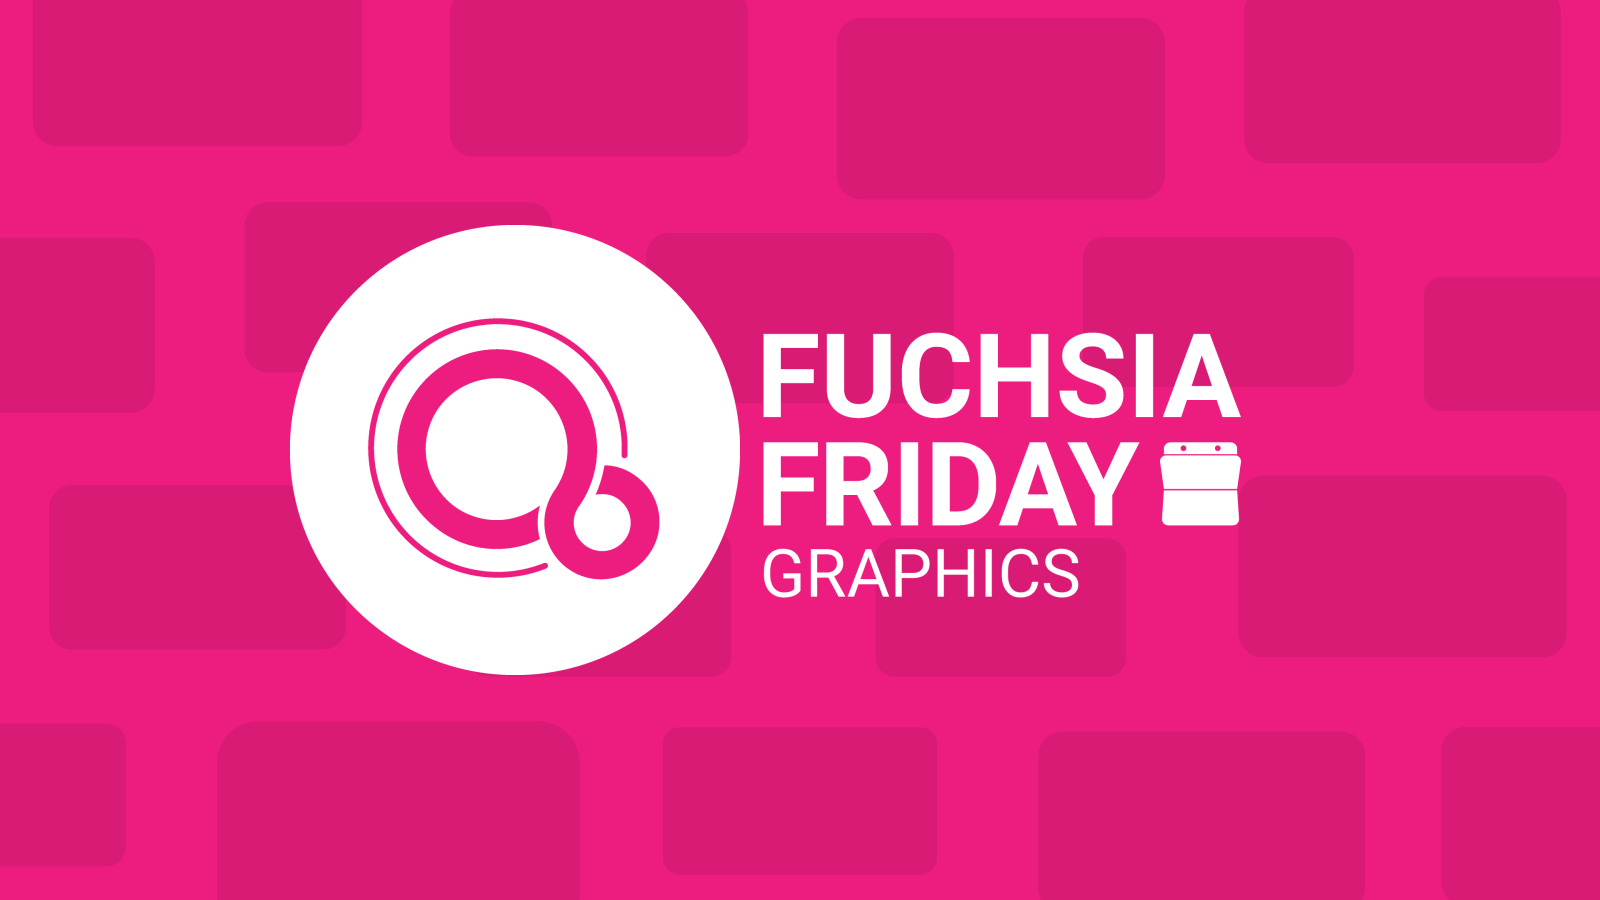 Fuchsia Friday: Graphics, Gaming, and VR (Oh my!) - 9to5Google